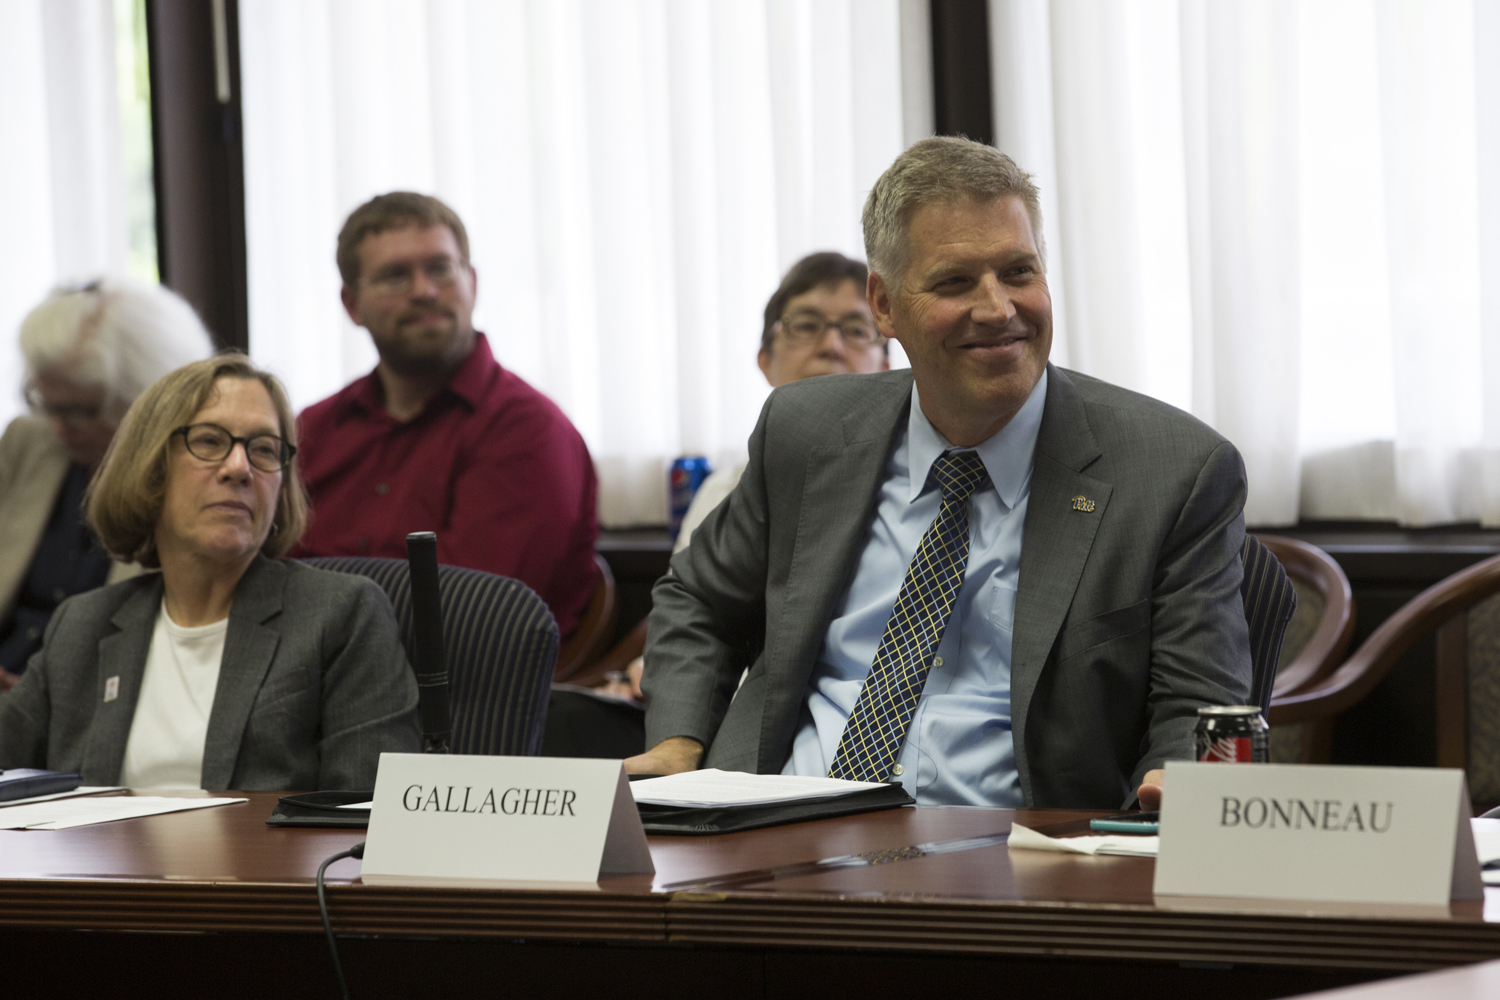 Chancellor Patrick Gallagher spoke about the uncertainty of the upcoming Pennsylvania budget for higher education funding at the first University Senate Council meeting of the 2018-19 school year Wednesday afternoon.